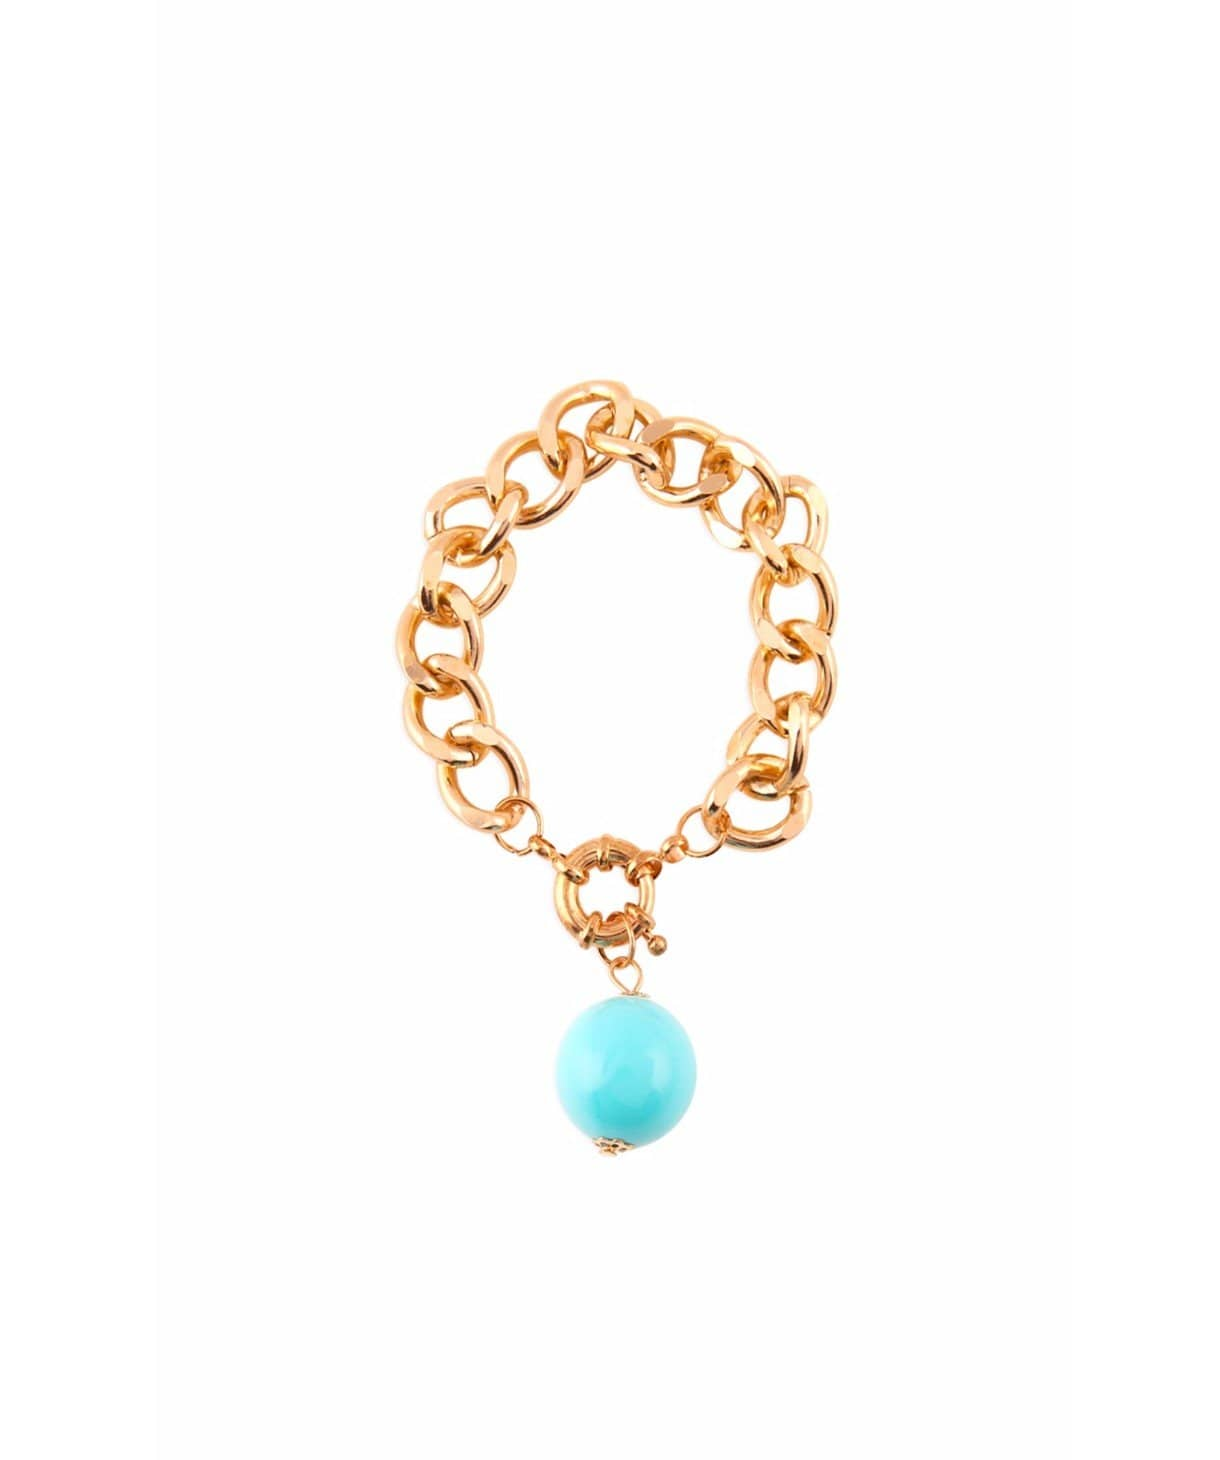 Aqua Bubble Bracelet - Uptownie